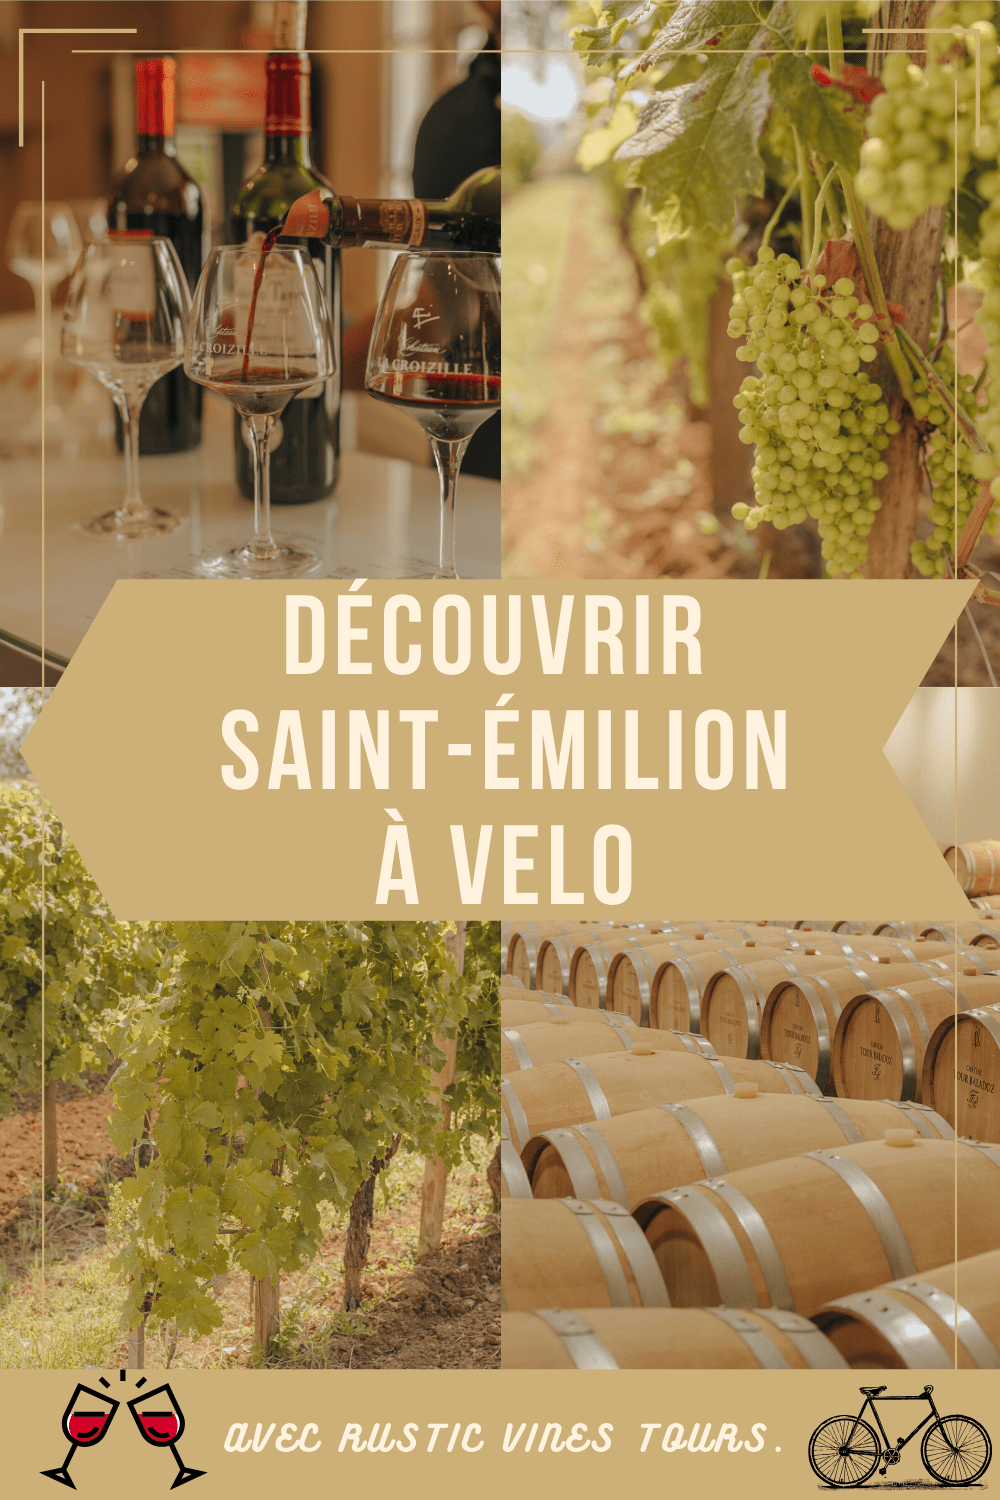 RUSTIC VINES TOUR, SAINT-ÉMILION, WINE TOUR